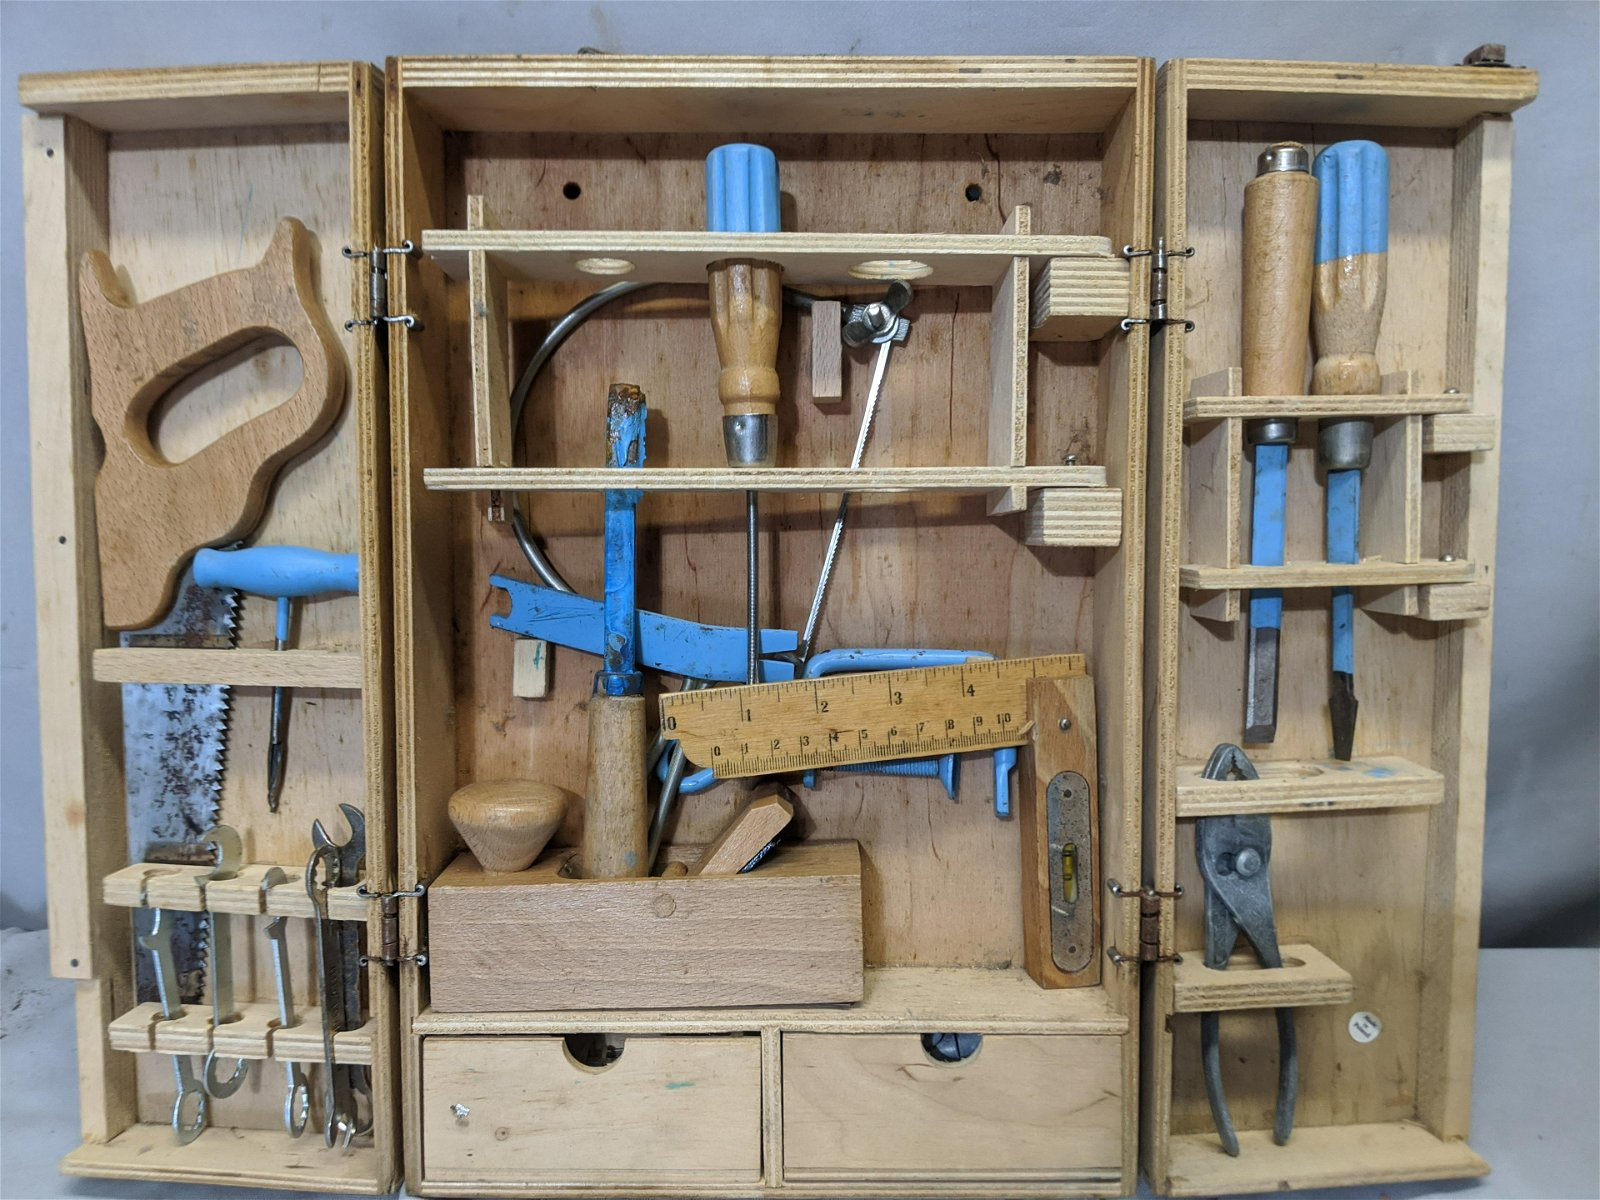 Vintage Child's Tool Set in Wood Case Made in Poland